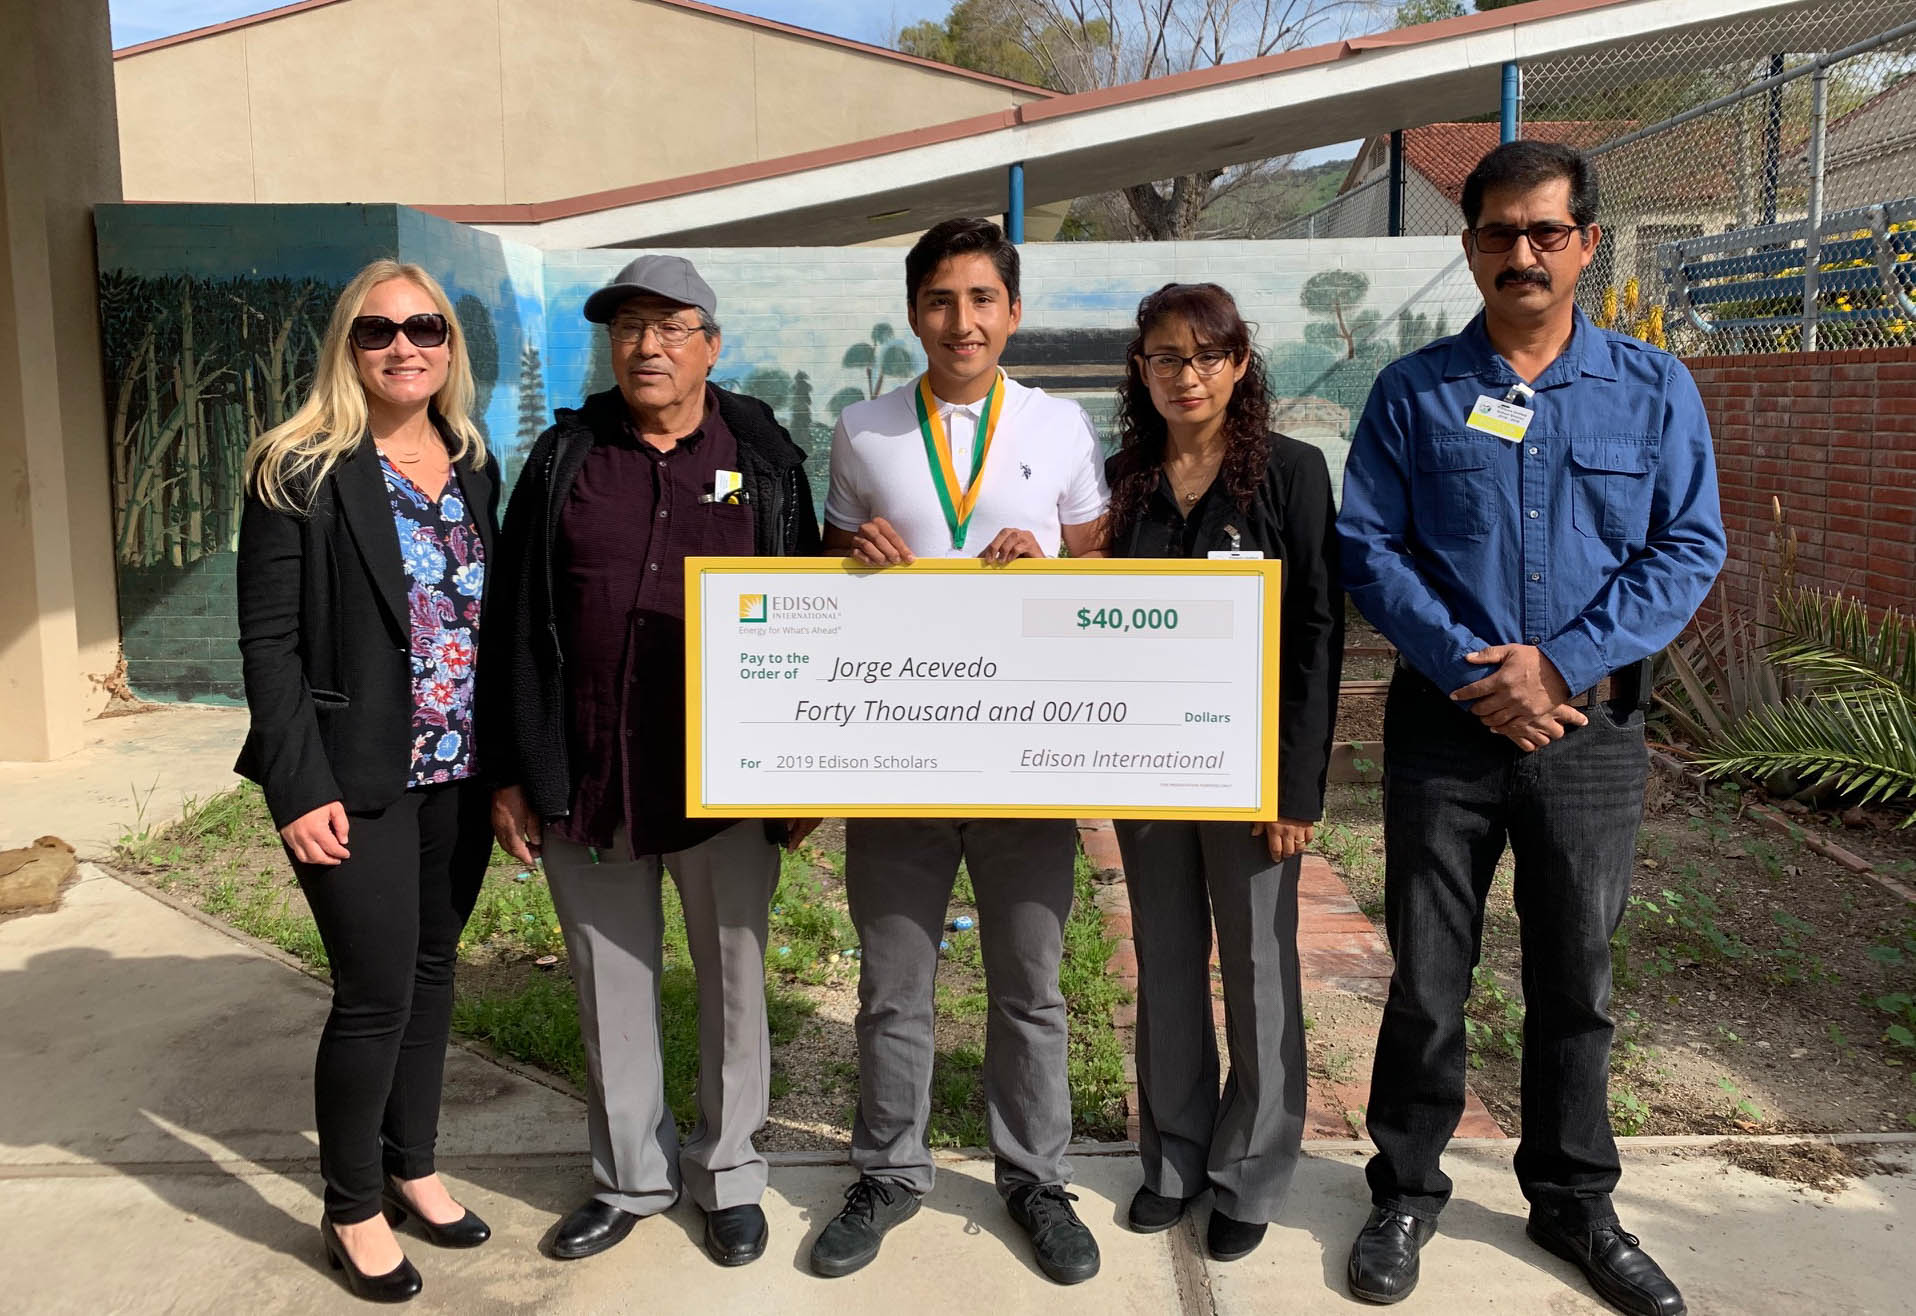 2019 Edison Scholar Jorge Acevedo at Fillmore High School